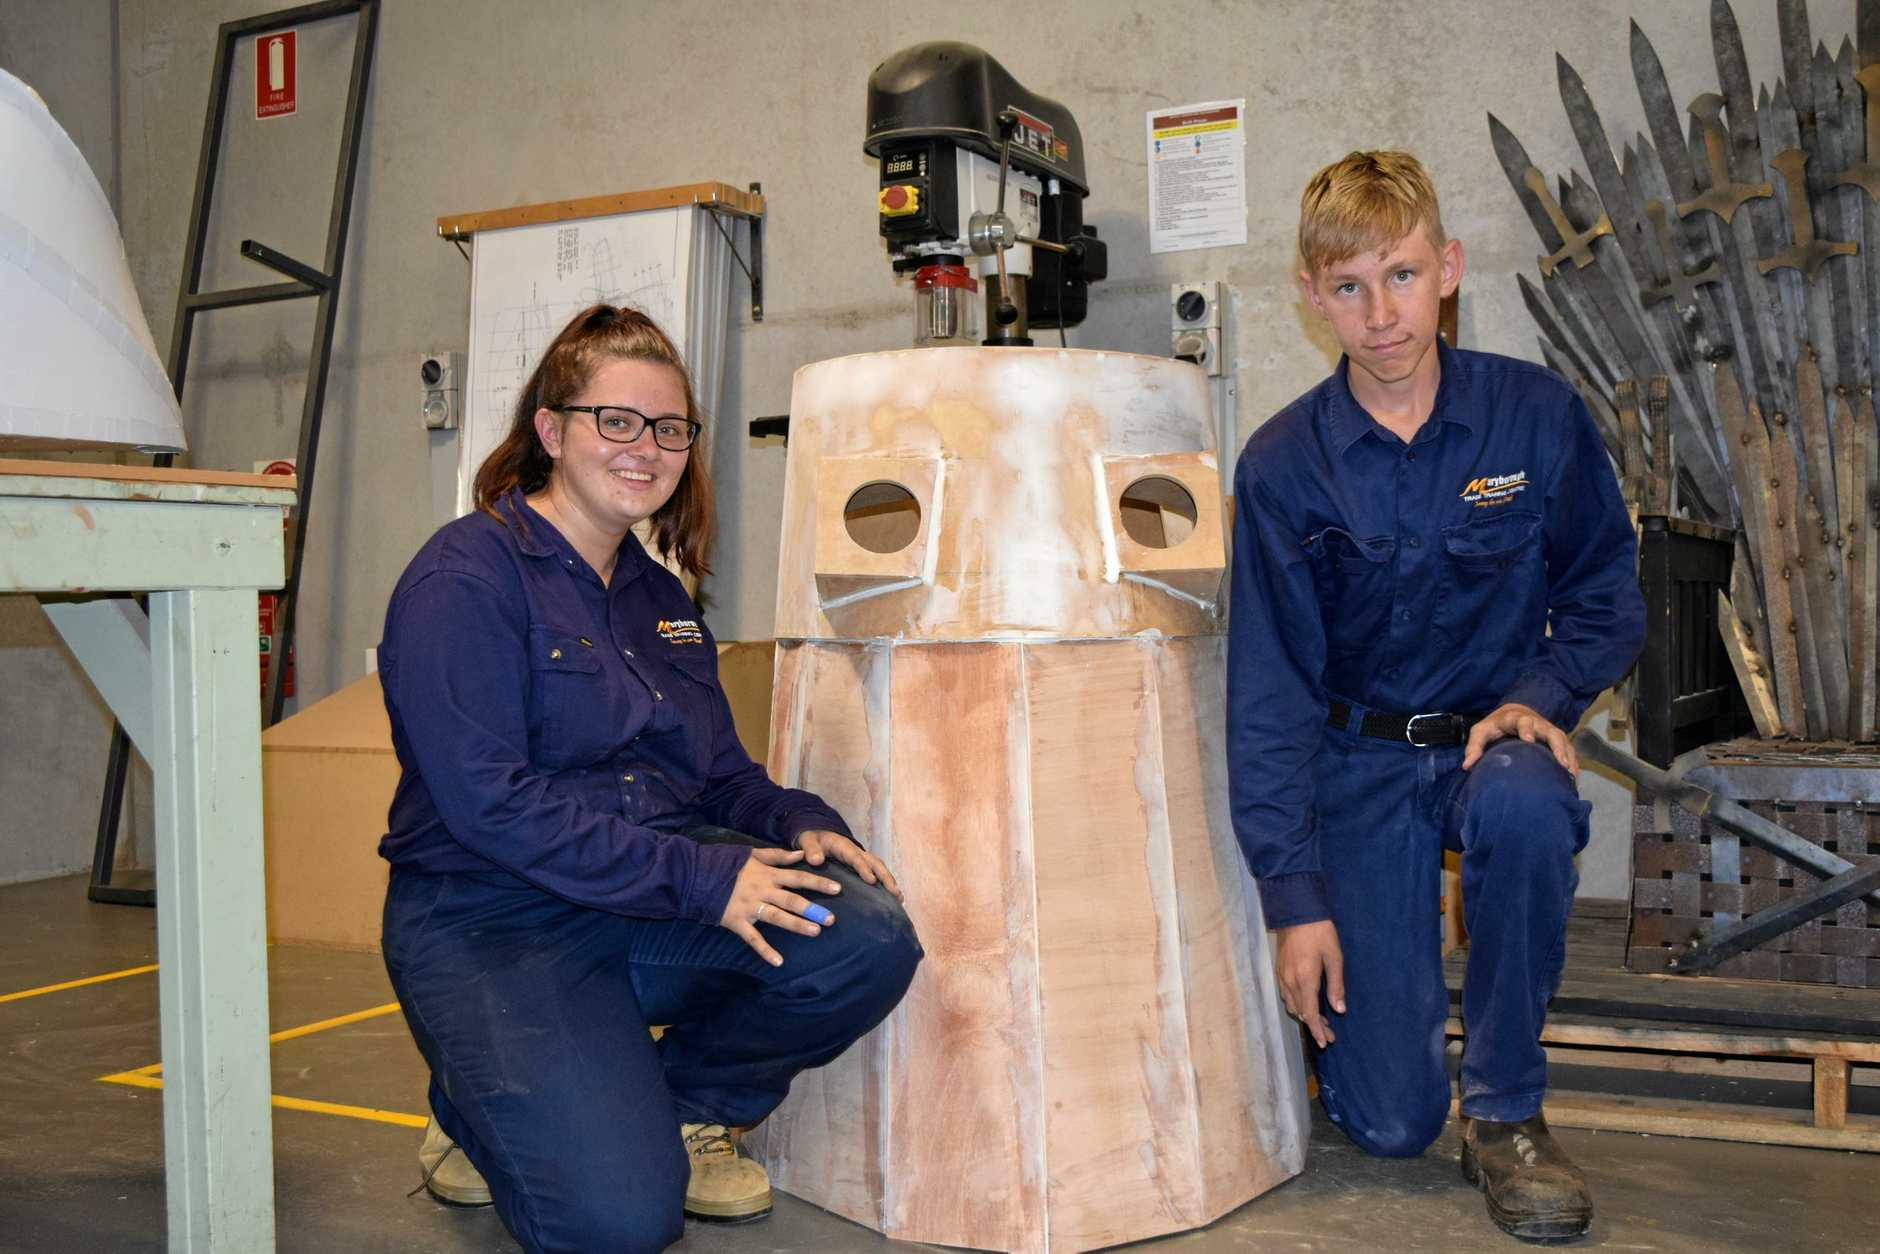 EXTERMINATE, EXTERMINATE: Maryborough State High School students Zoe Golchert and Declan Parker working on the Dalek that will debut at this year's FraserPop Pop Culture Festival.